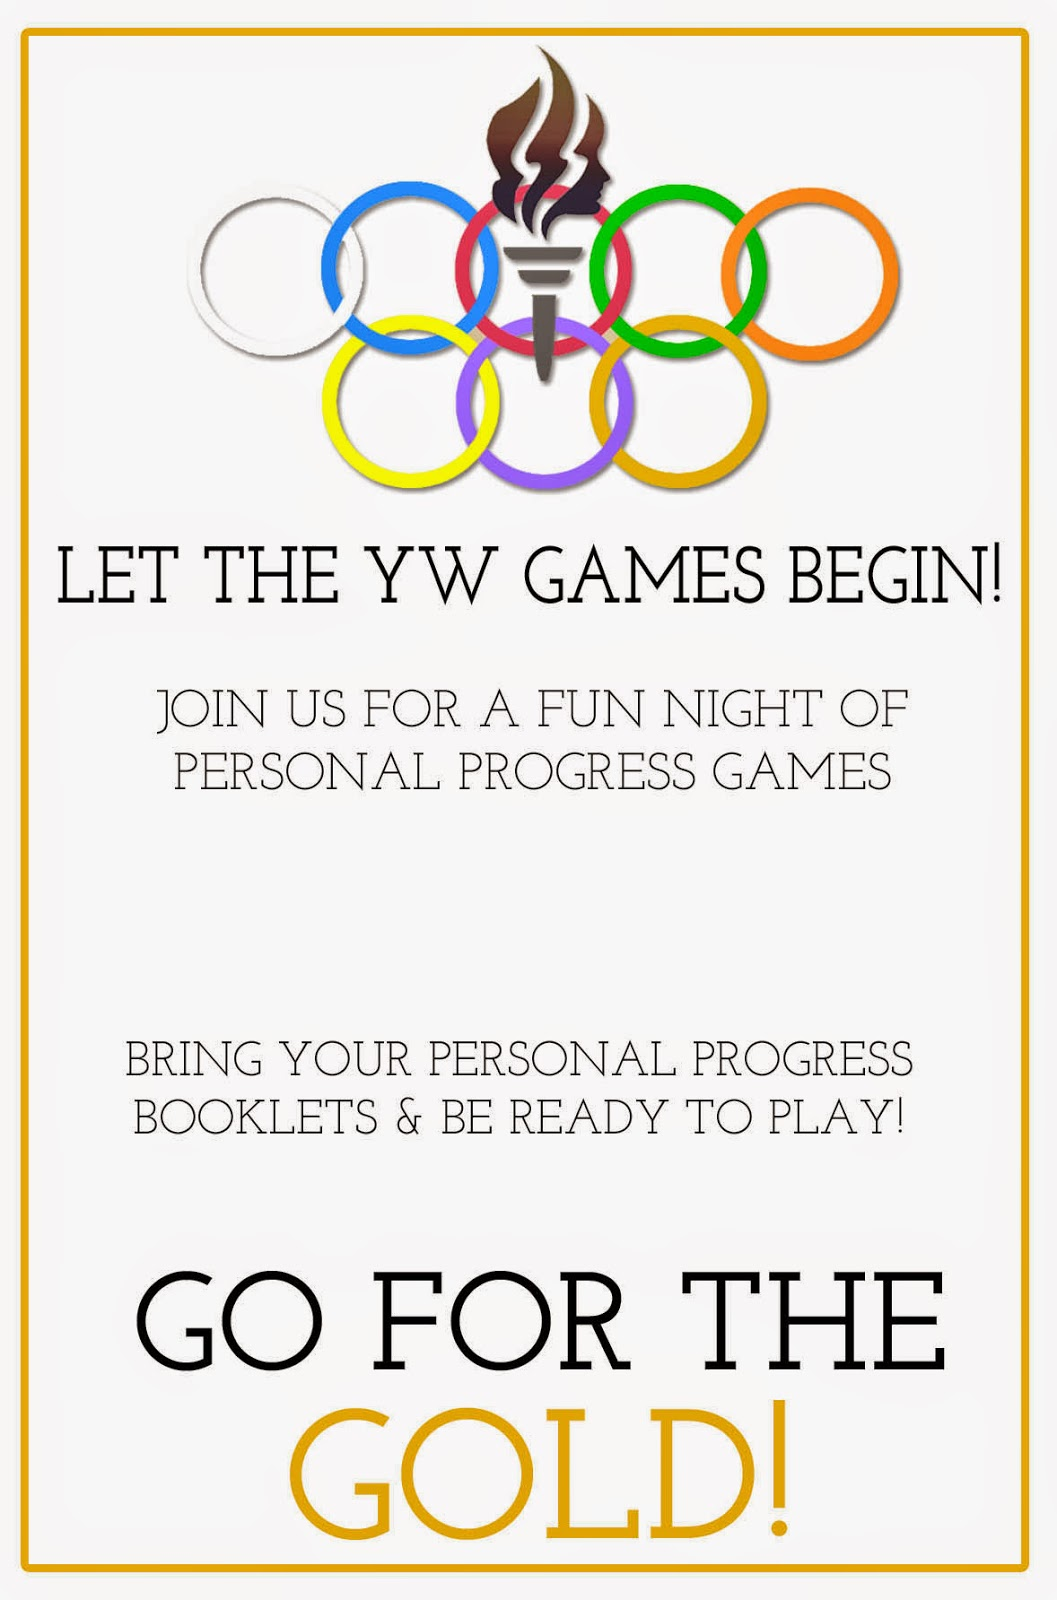 Olympic party invitations alesifo olympic party invitations is awesome invitation sample stopboris Choice Image